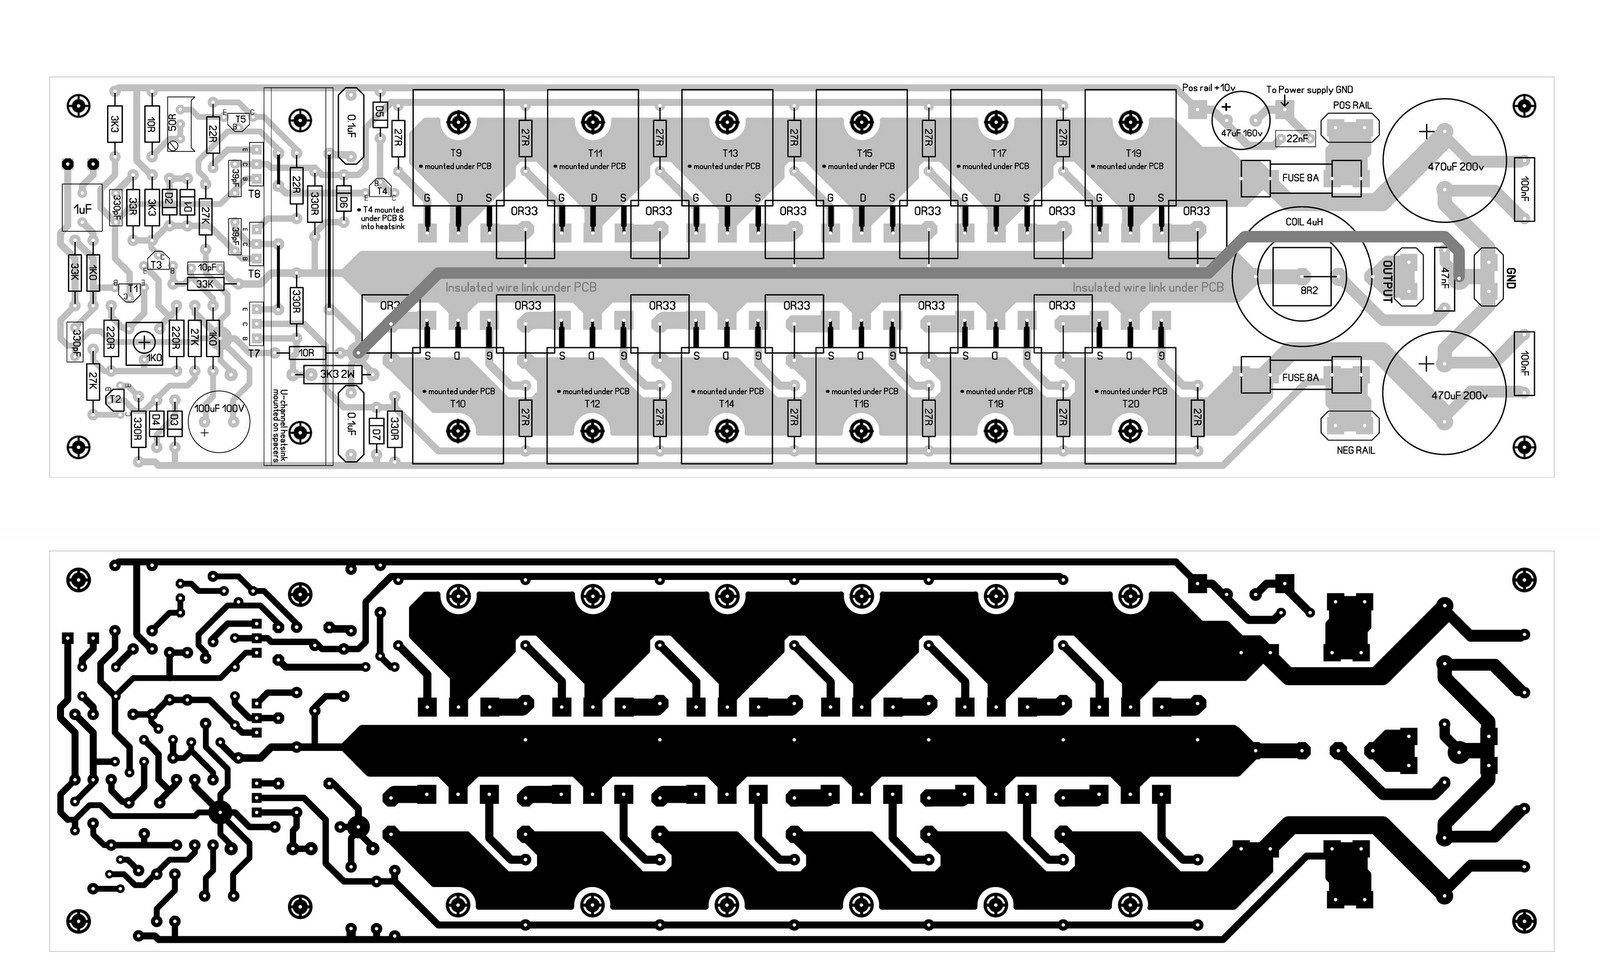 hight resolution of 600w mosfet power amplifier pcb design